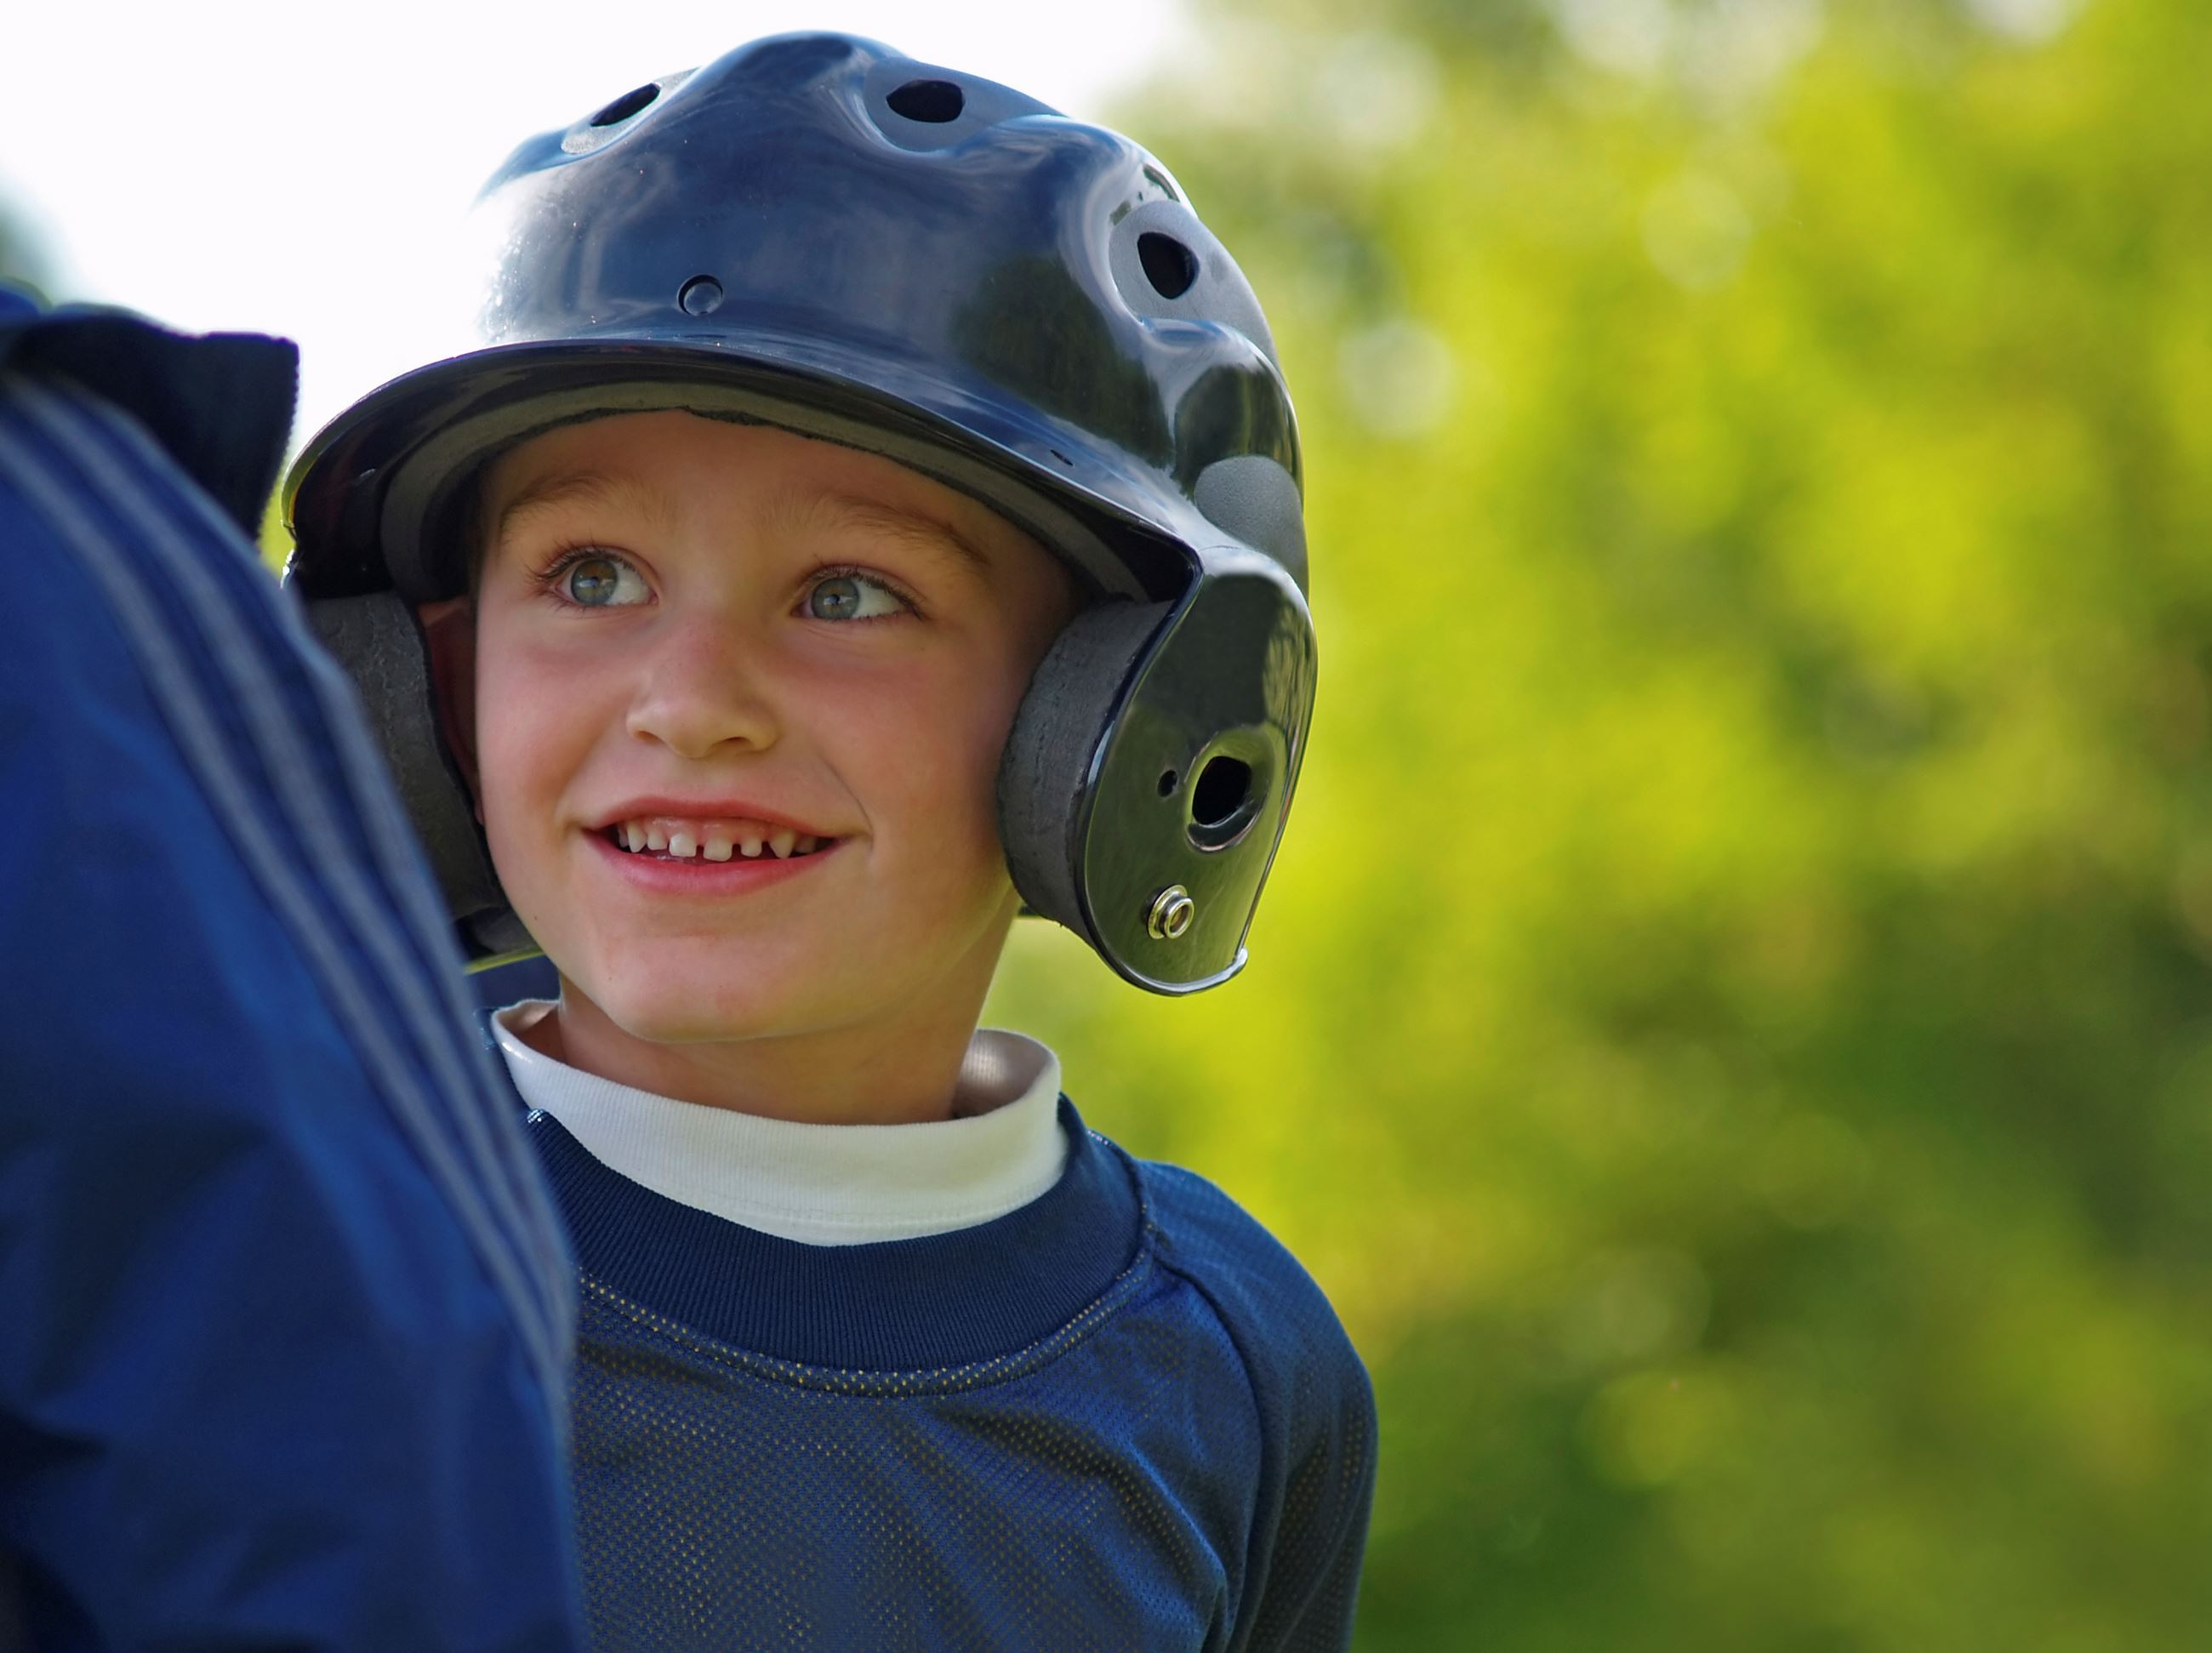 boy-playing-baseball-000001803709_Large